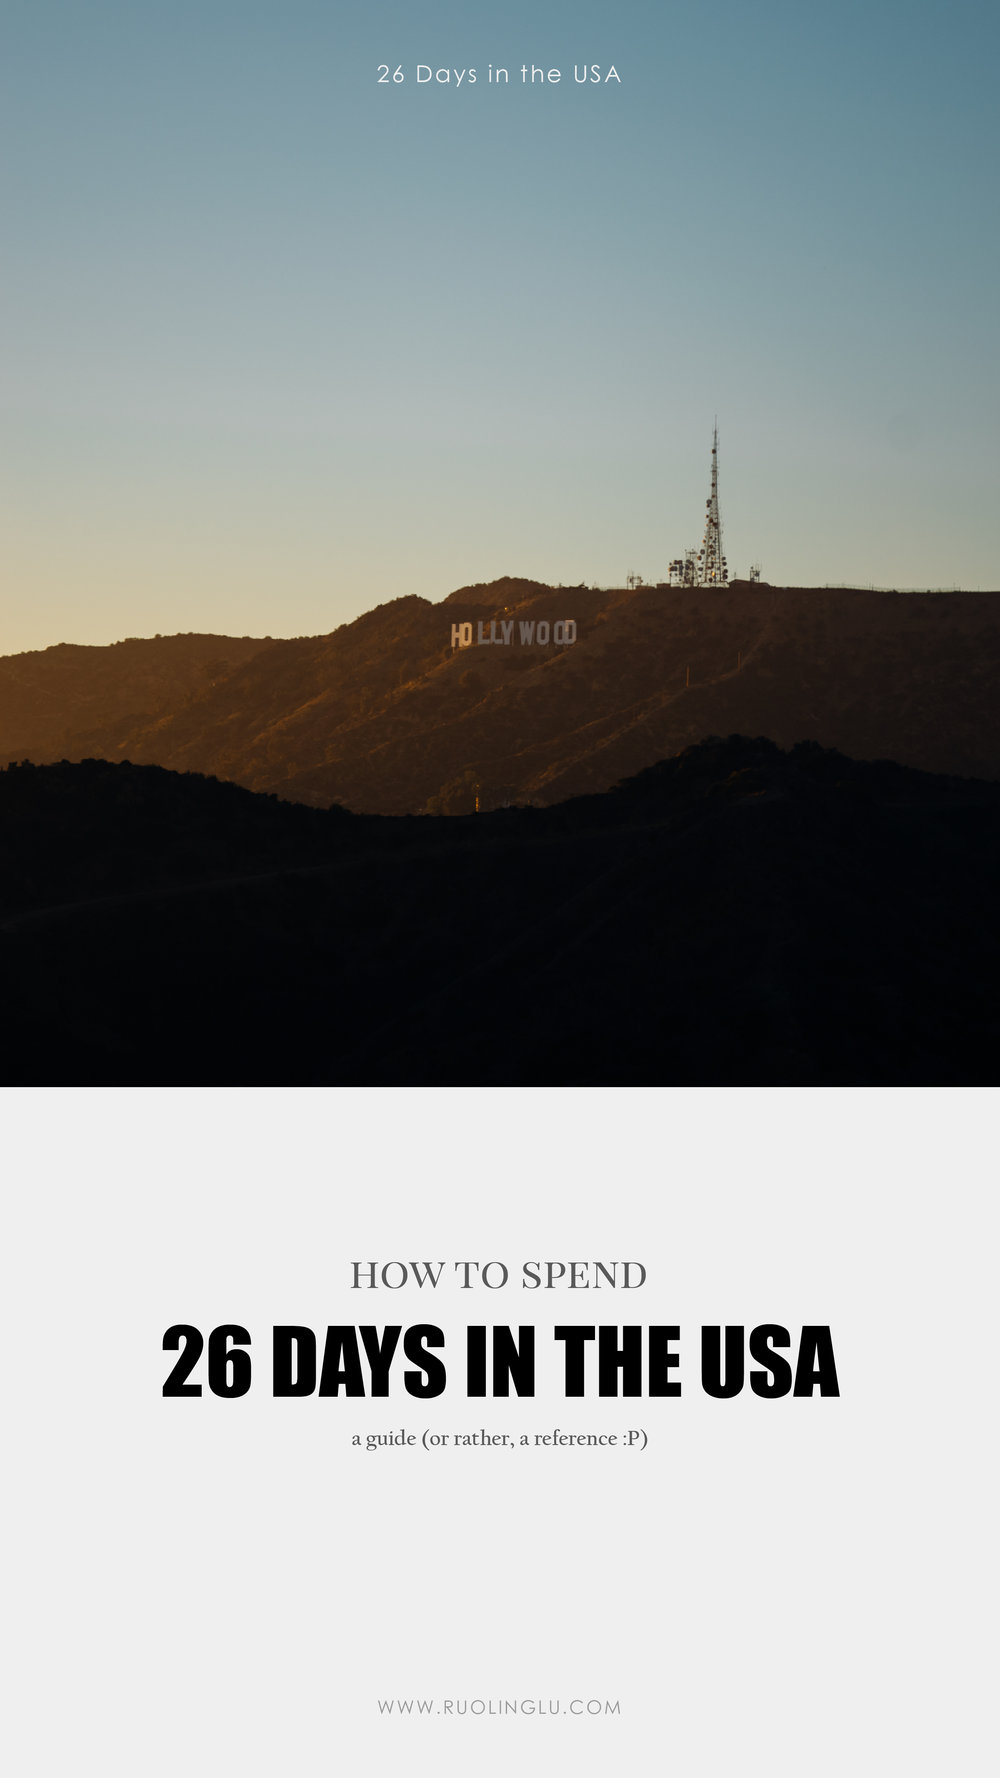 How To Spend 26 Days In The USA Guide | A Beautiful Distraction by Ruo Ling Lu